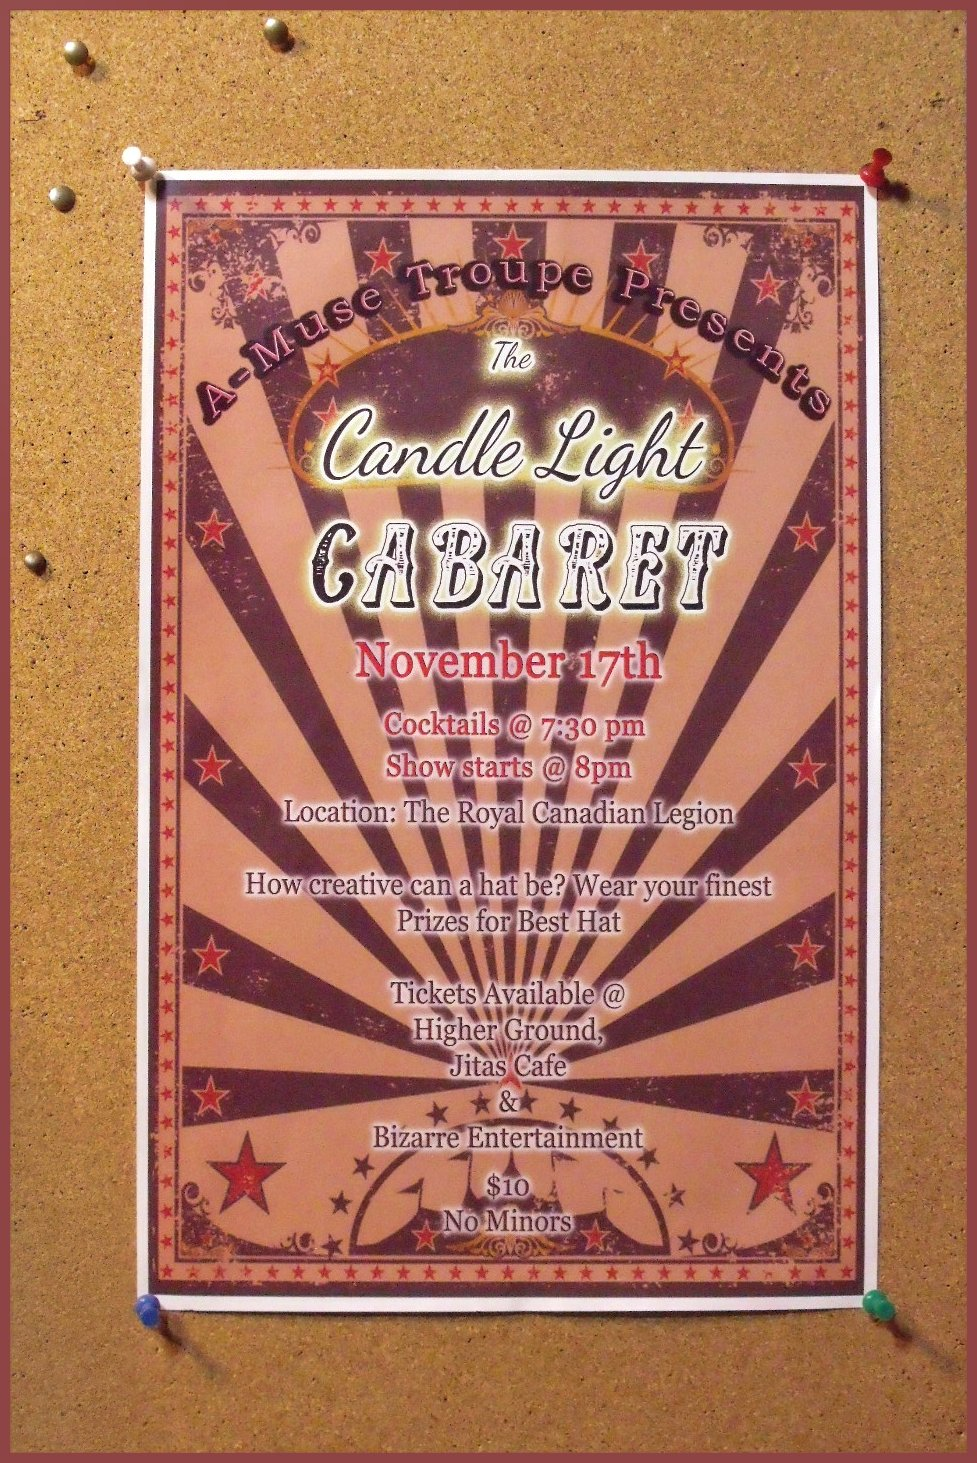 The candle light cabaret show